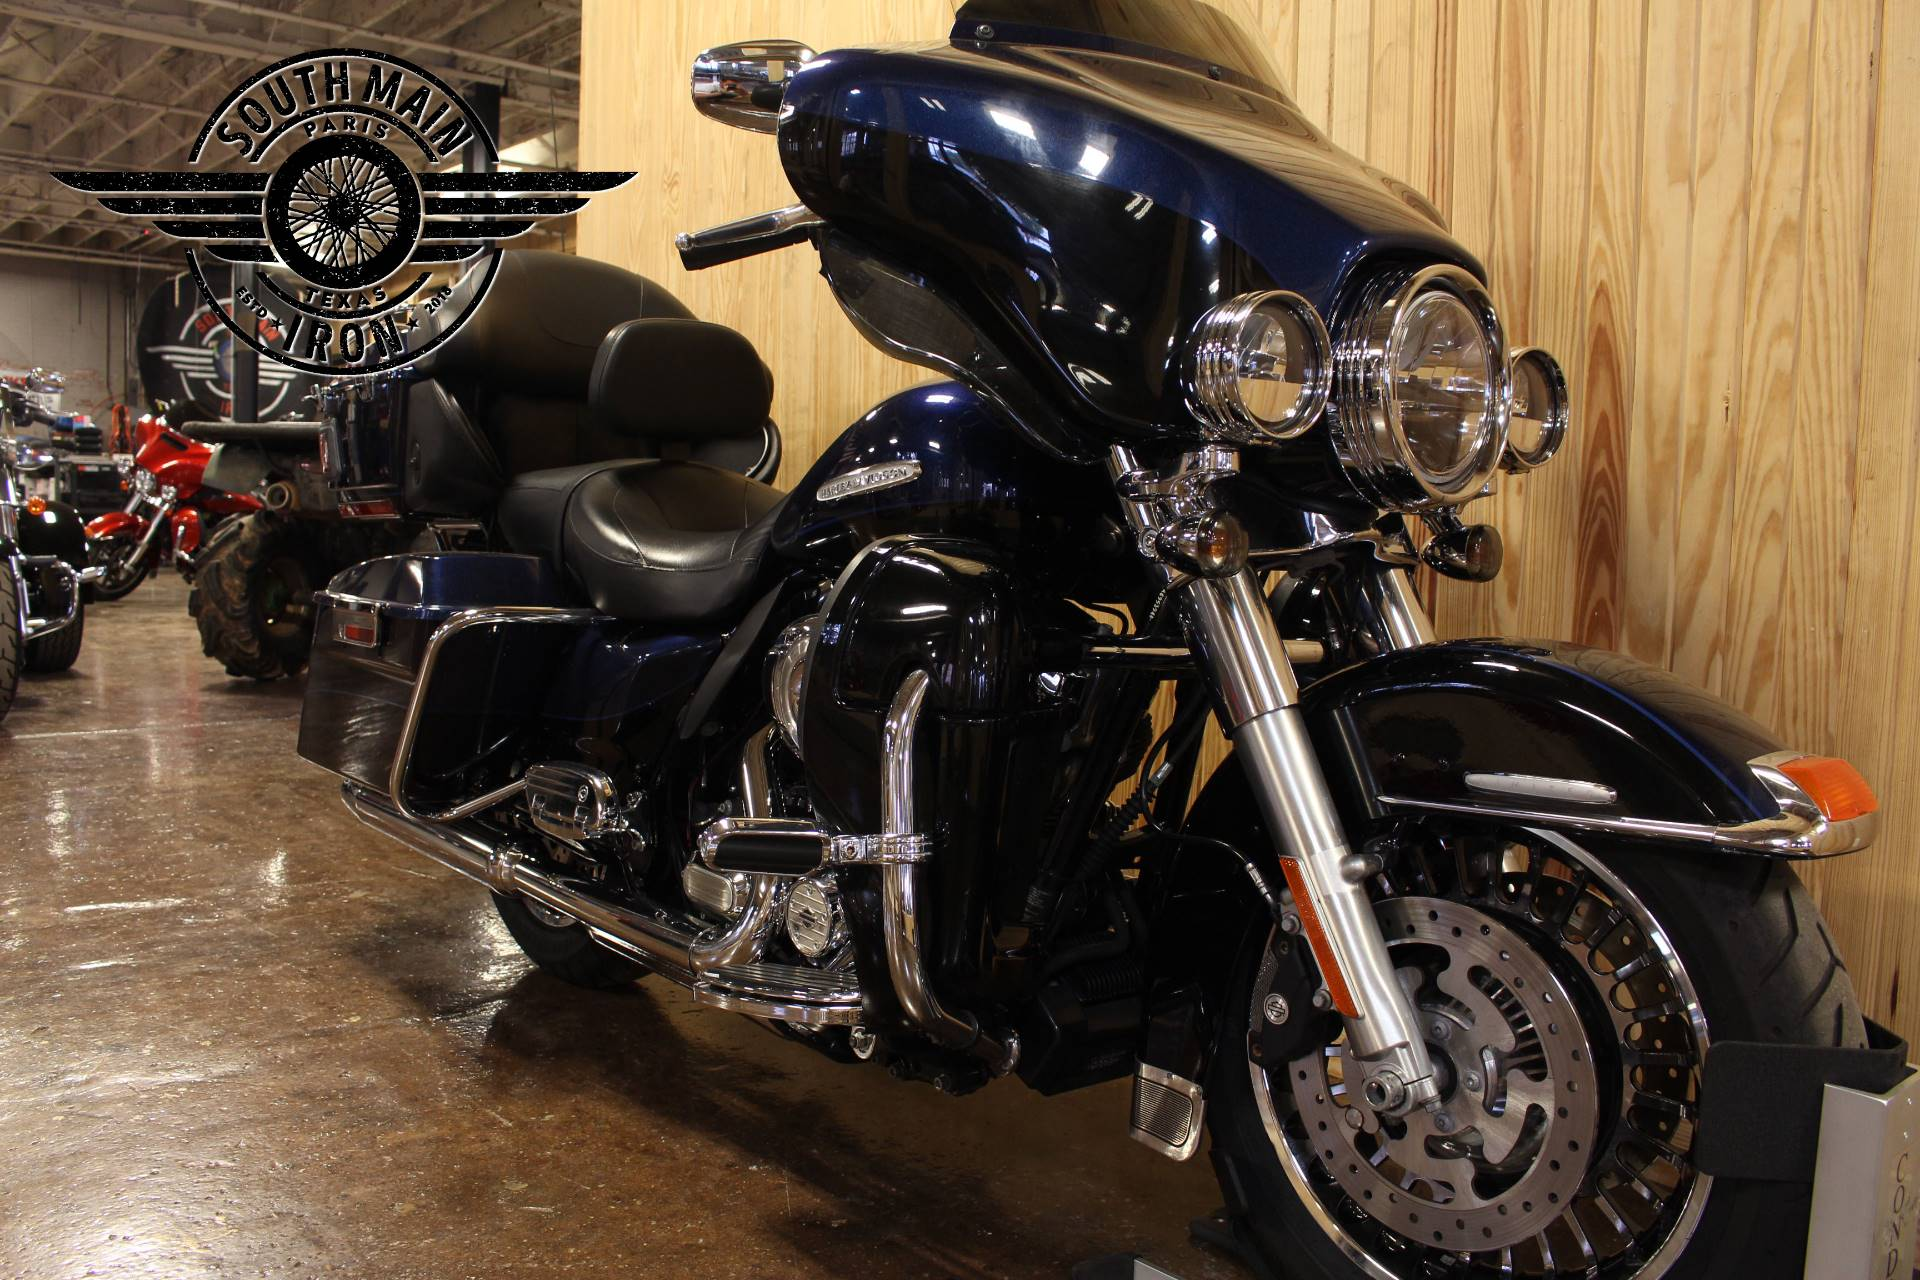 2012 Harley-Davidson Electra Glide® Ultra Limited in Paris, Texas - Photo 4